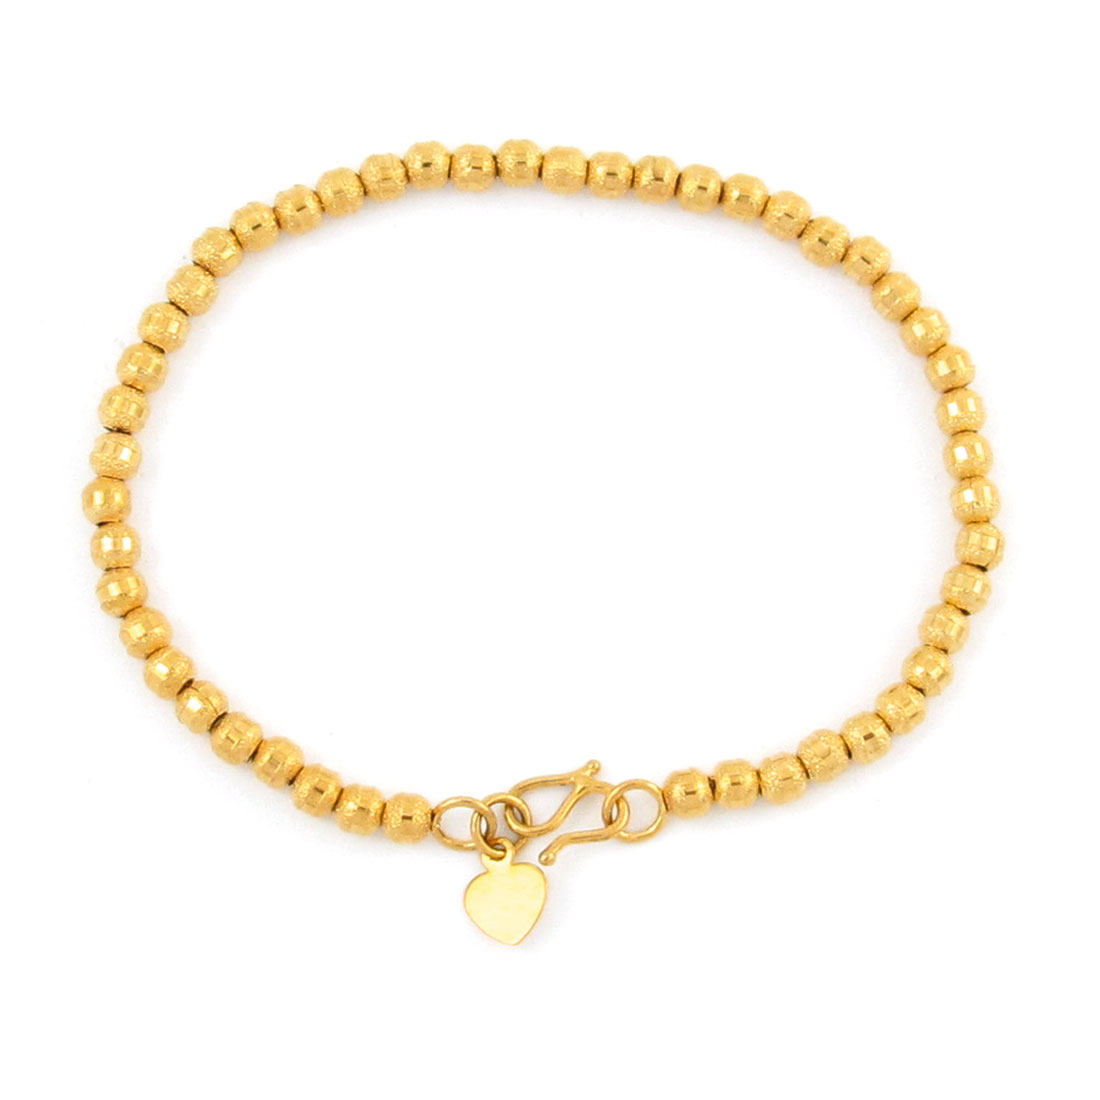 Gold Tone Metallic Beads Bracelet Wrist Ornament for Lady